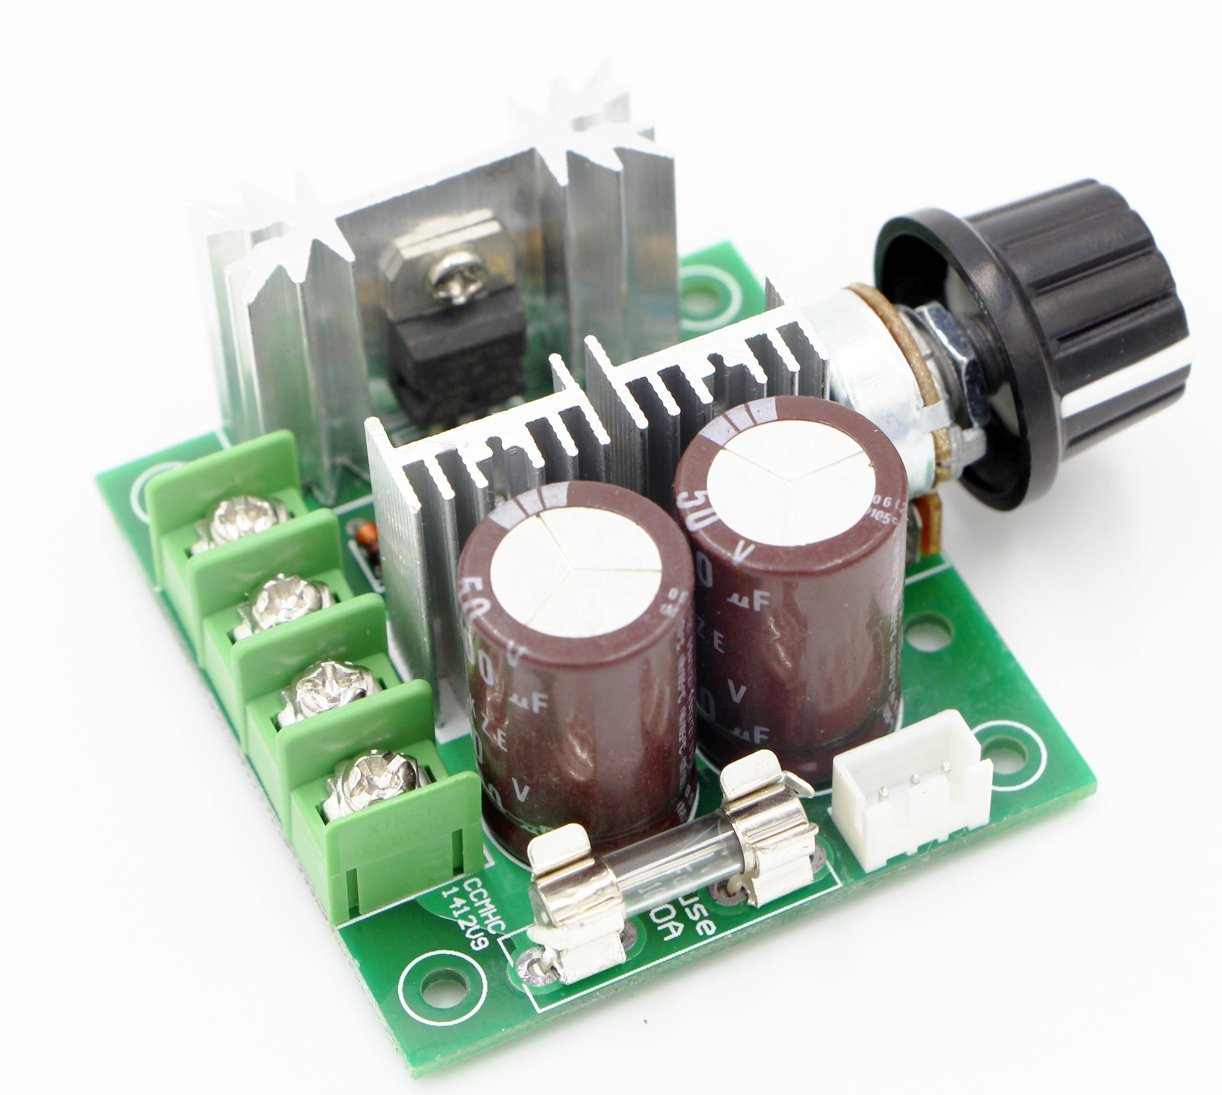 Riorand 12v 40v 10a Pwm Dc Motor Speed Controller With Knob High Connecting A 6 Terminal Toggle Switch To 12volt Or Efficiency Torque Low Heat Generating Reverse Polarity Protection Current